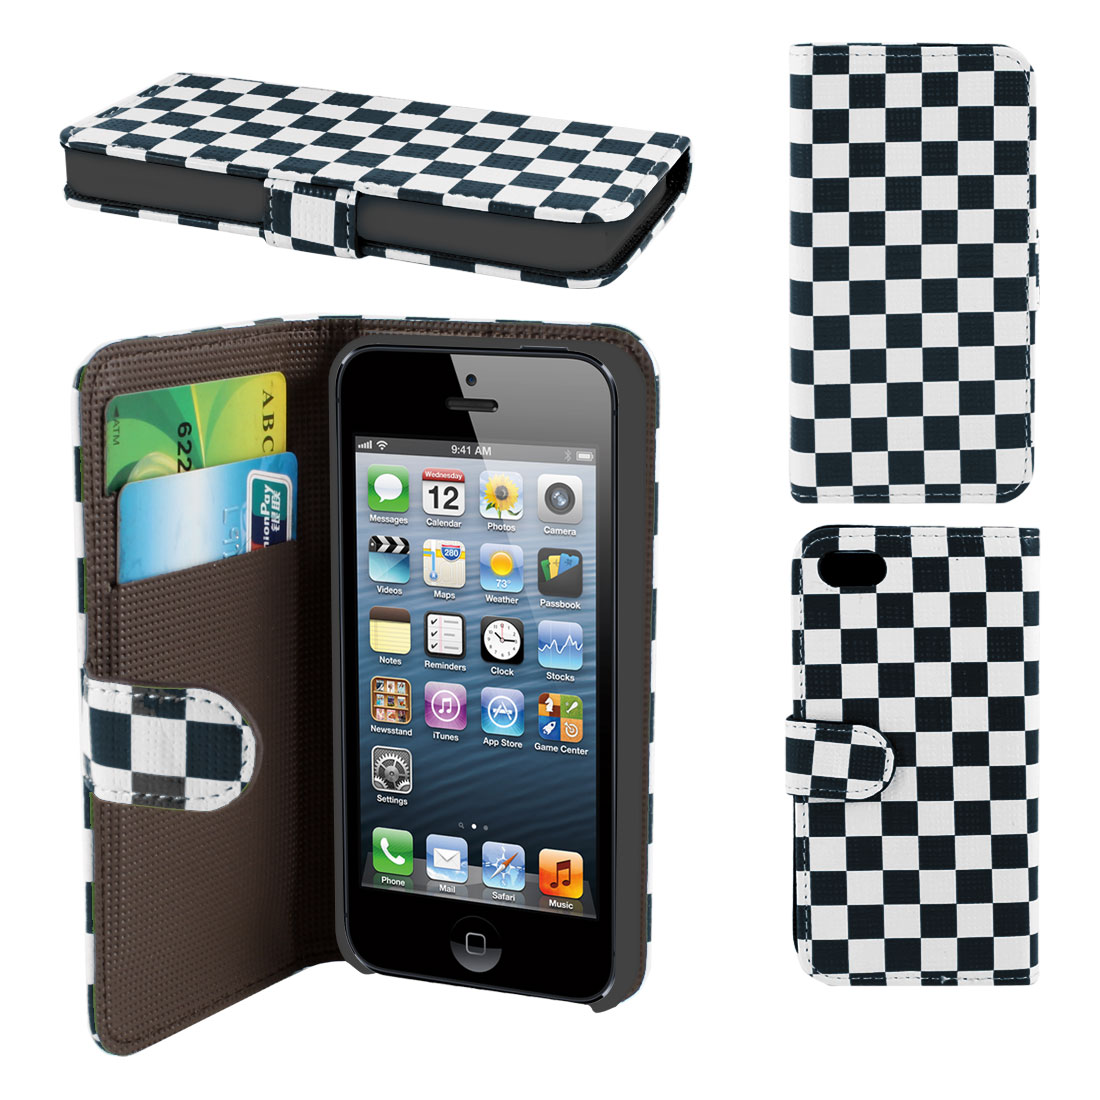 White Navy Blue Check Pattern PU Leather Card Holder Flip Case Cover for iPhone 5 5G 5th